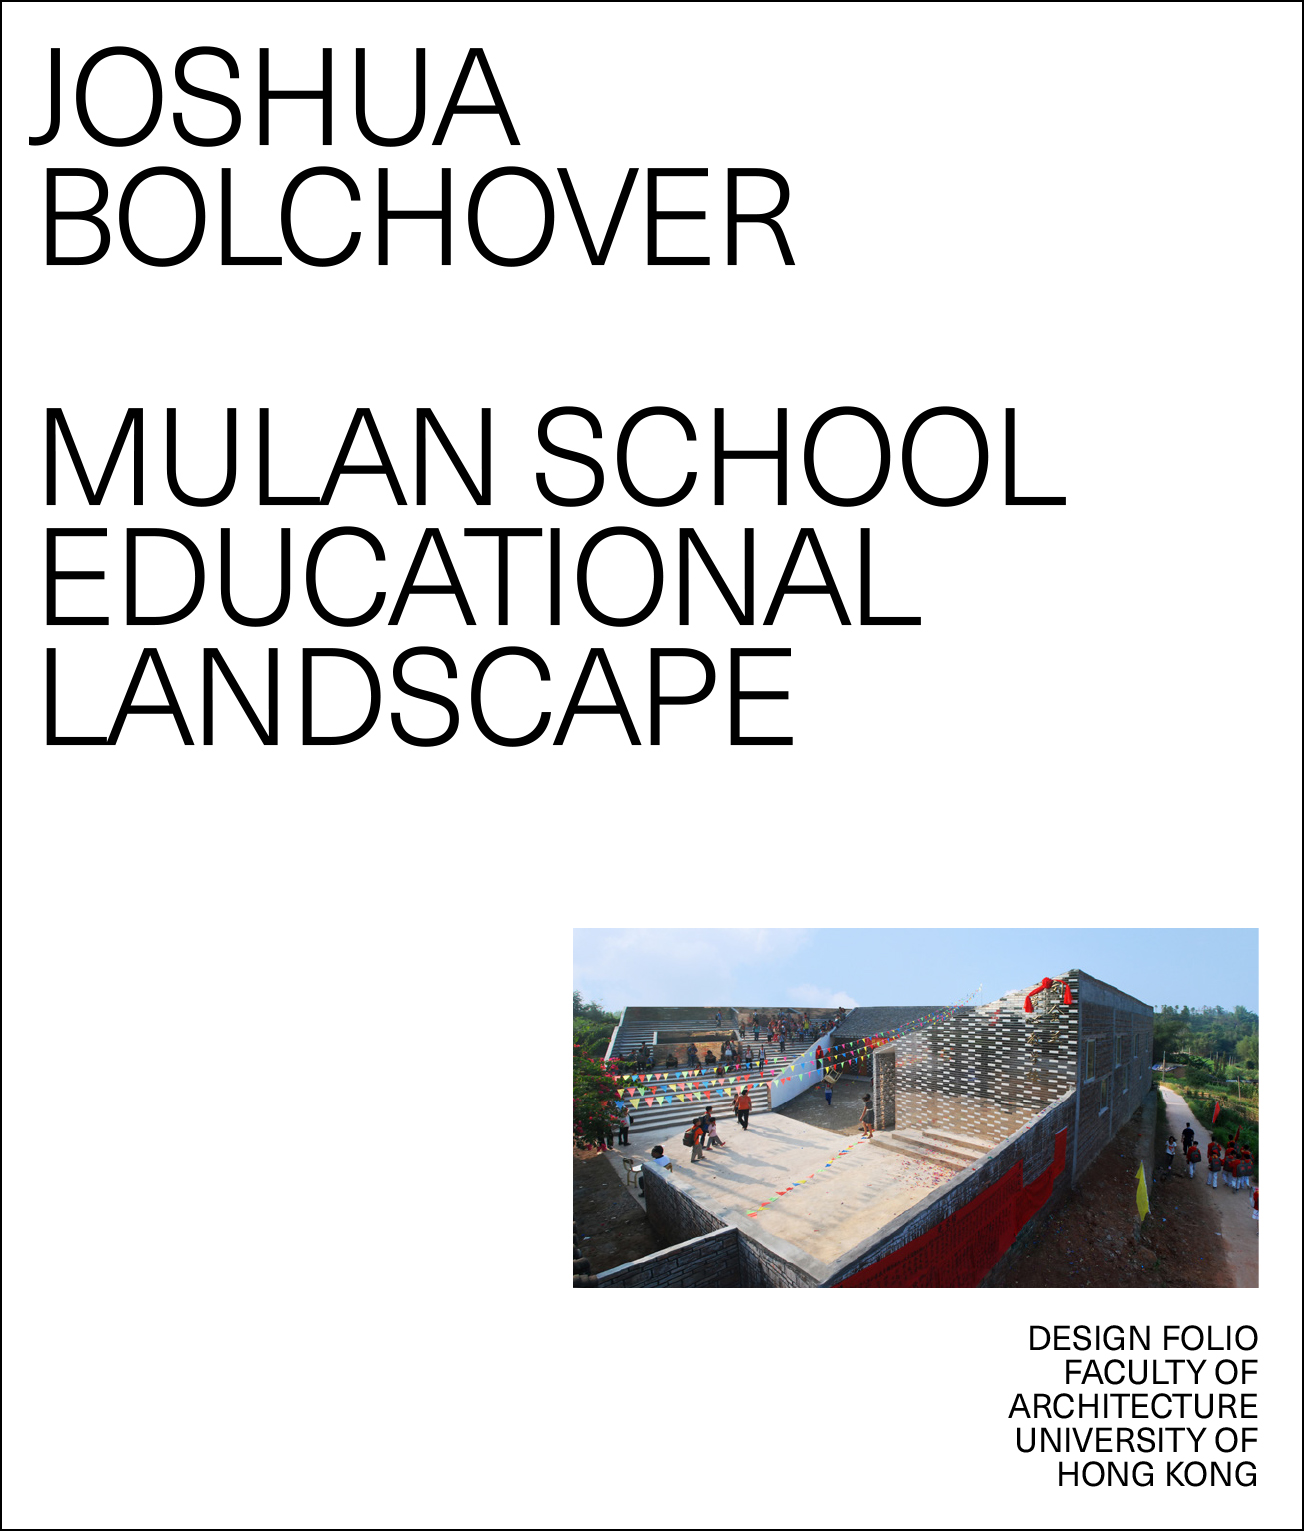 Mulan School Educational Landscape